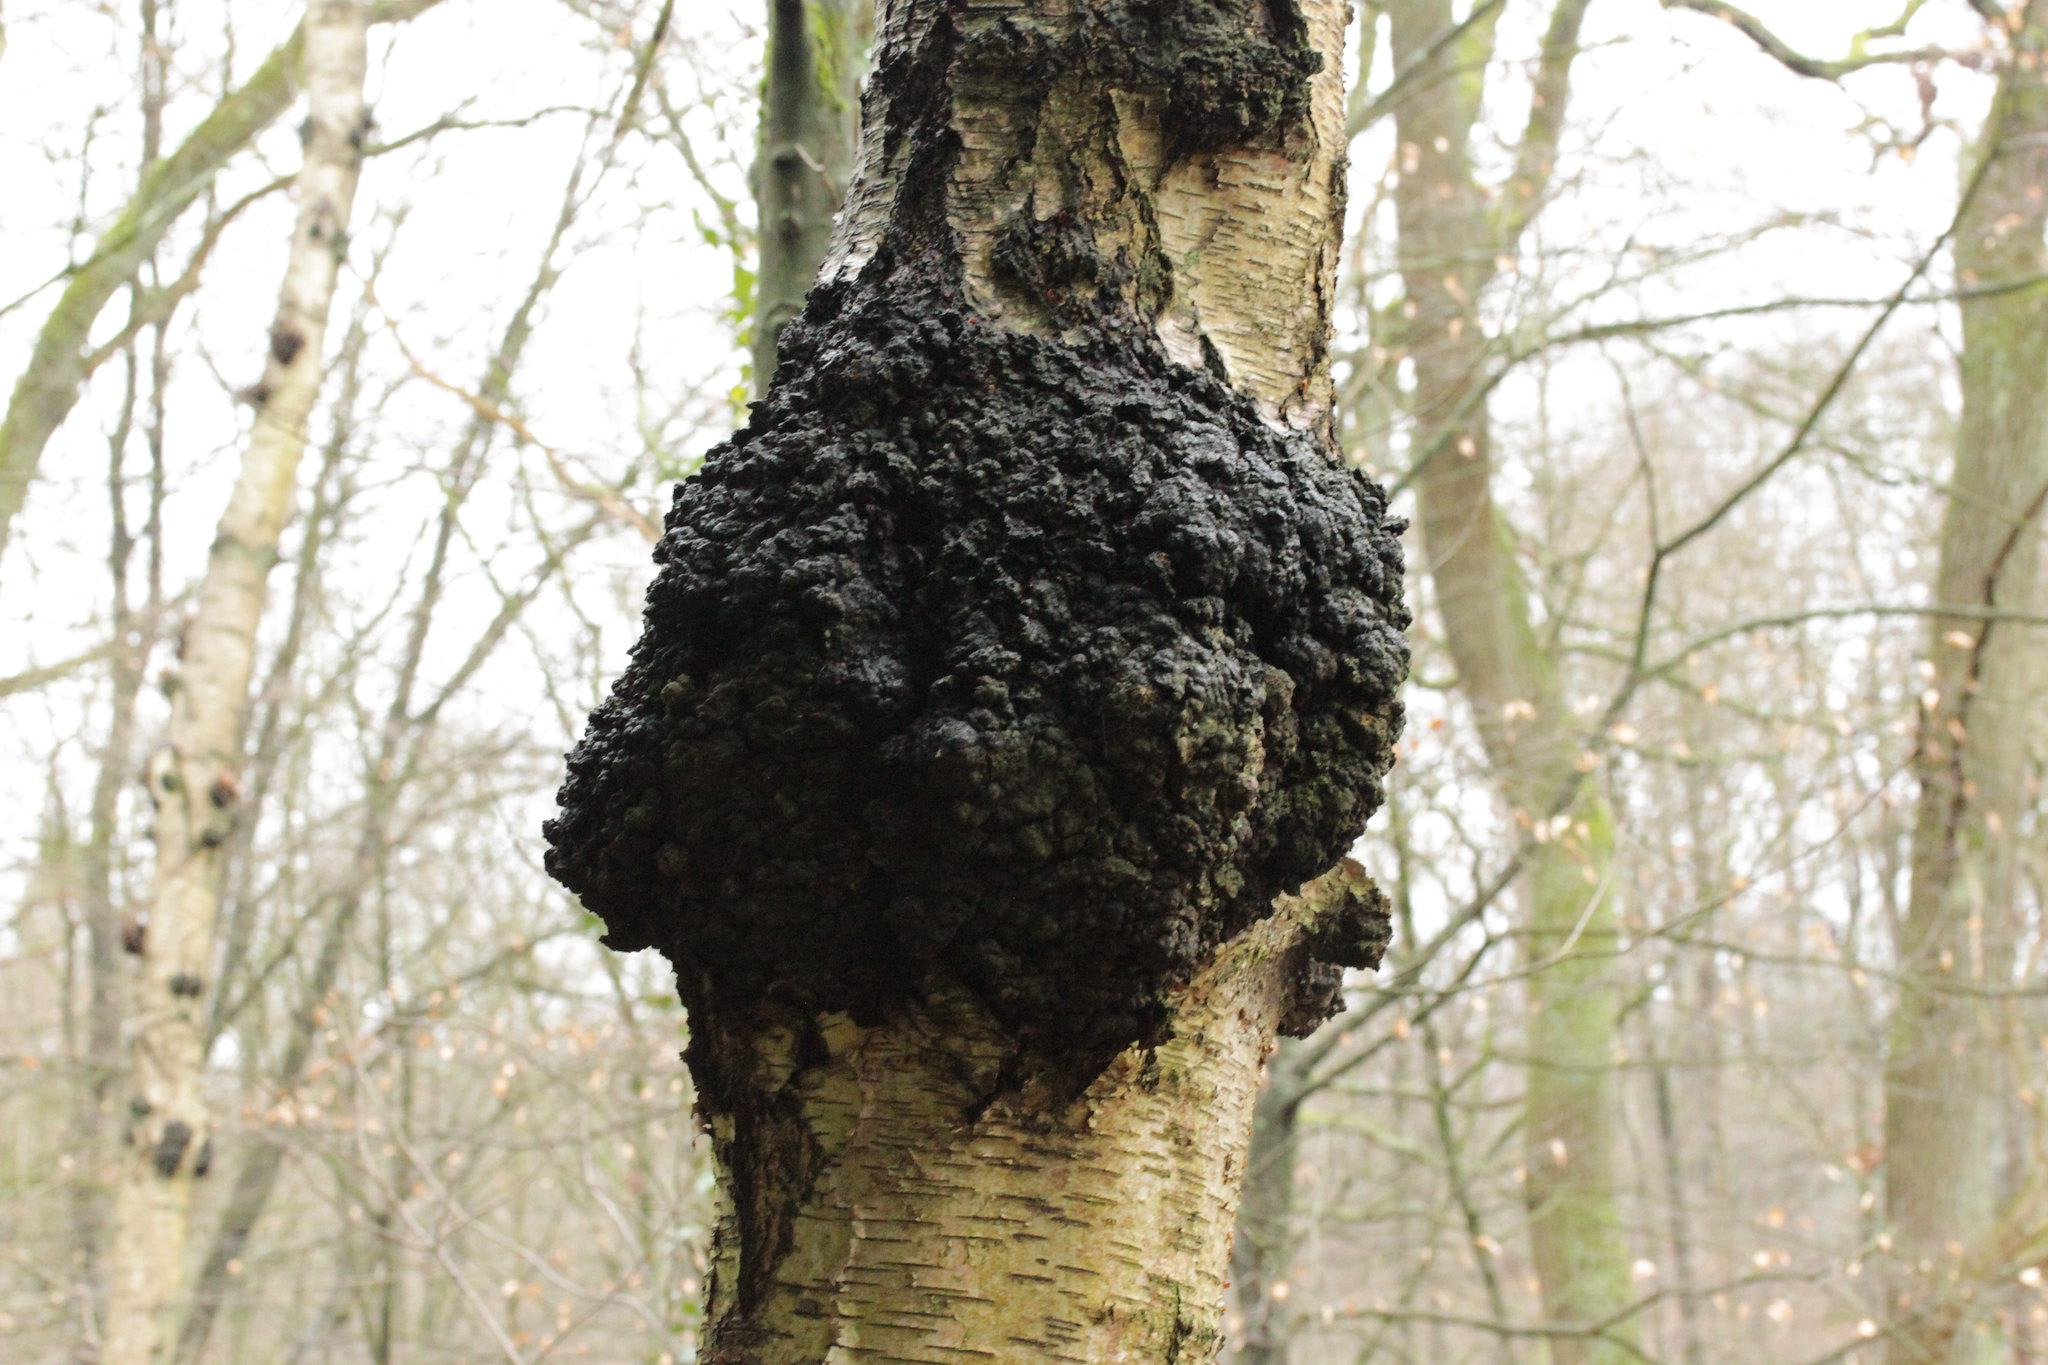 chaga mushroom on birch tree